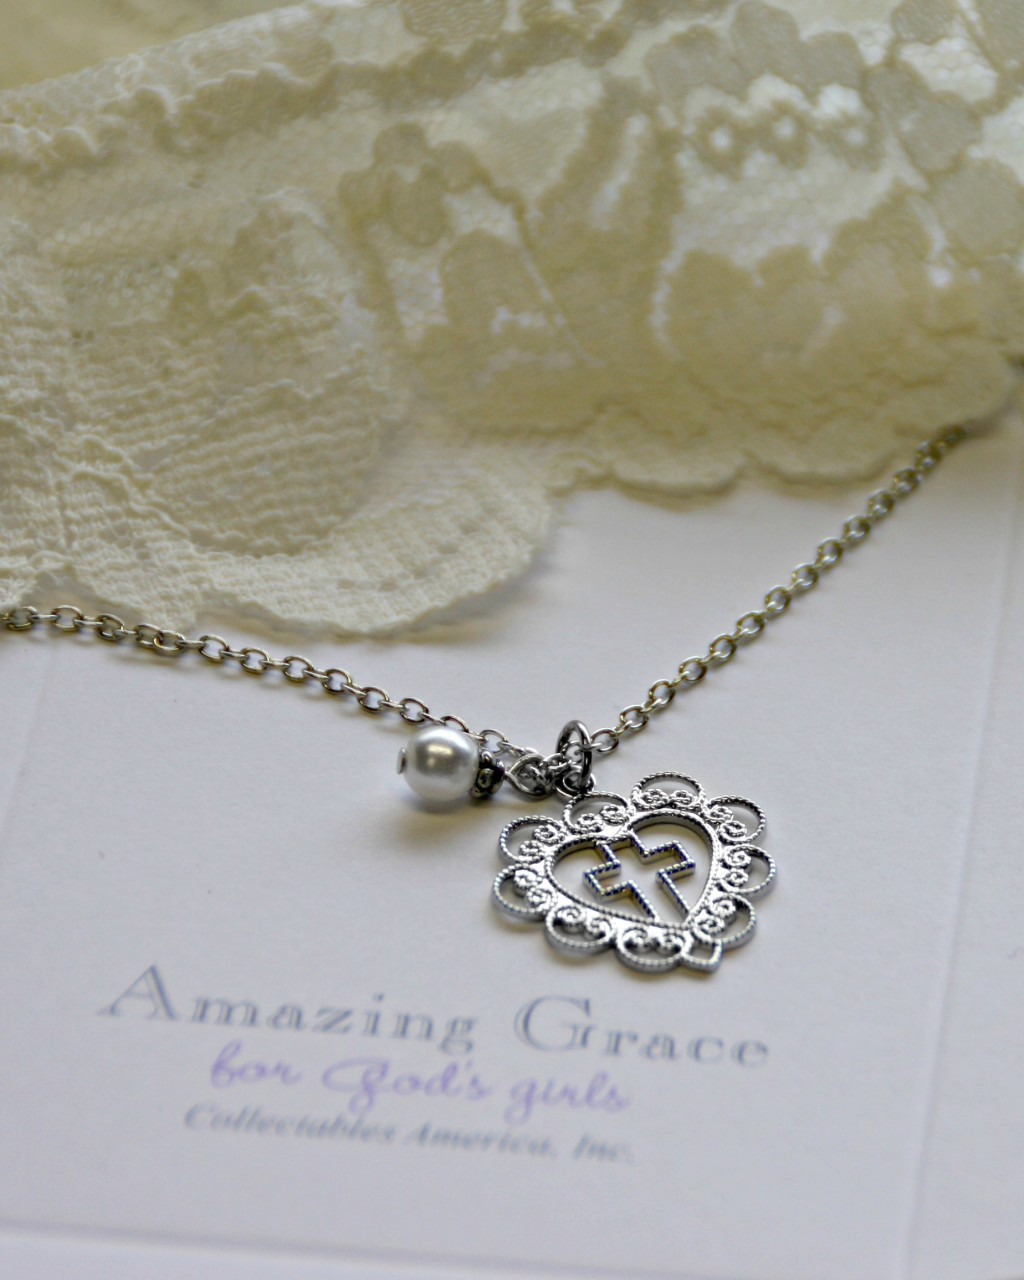 GG-28  Amazing Grace Lace Heart